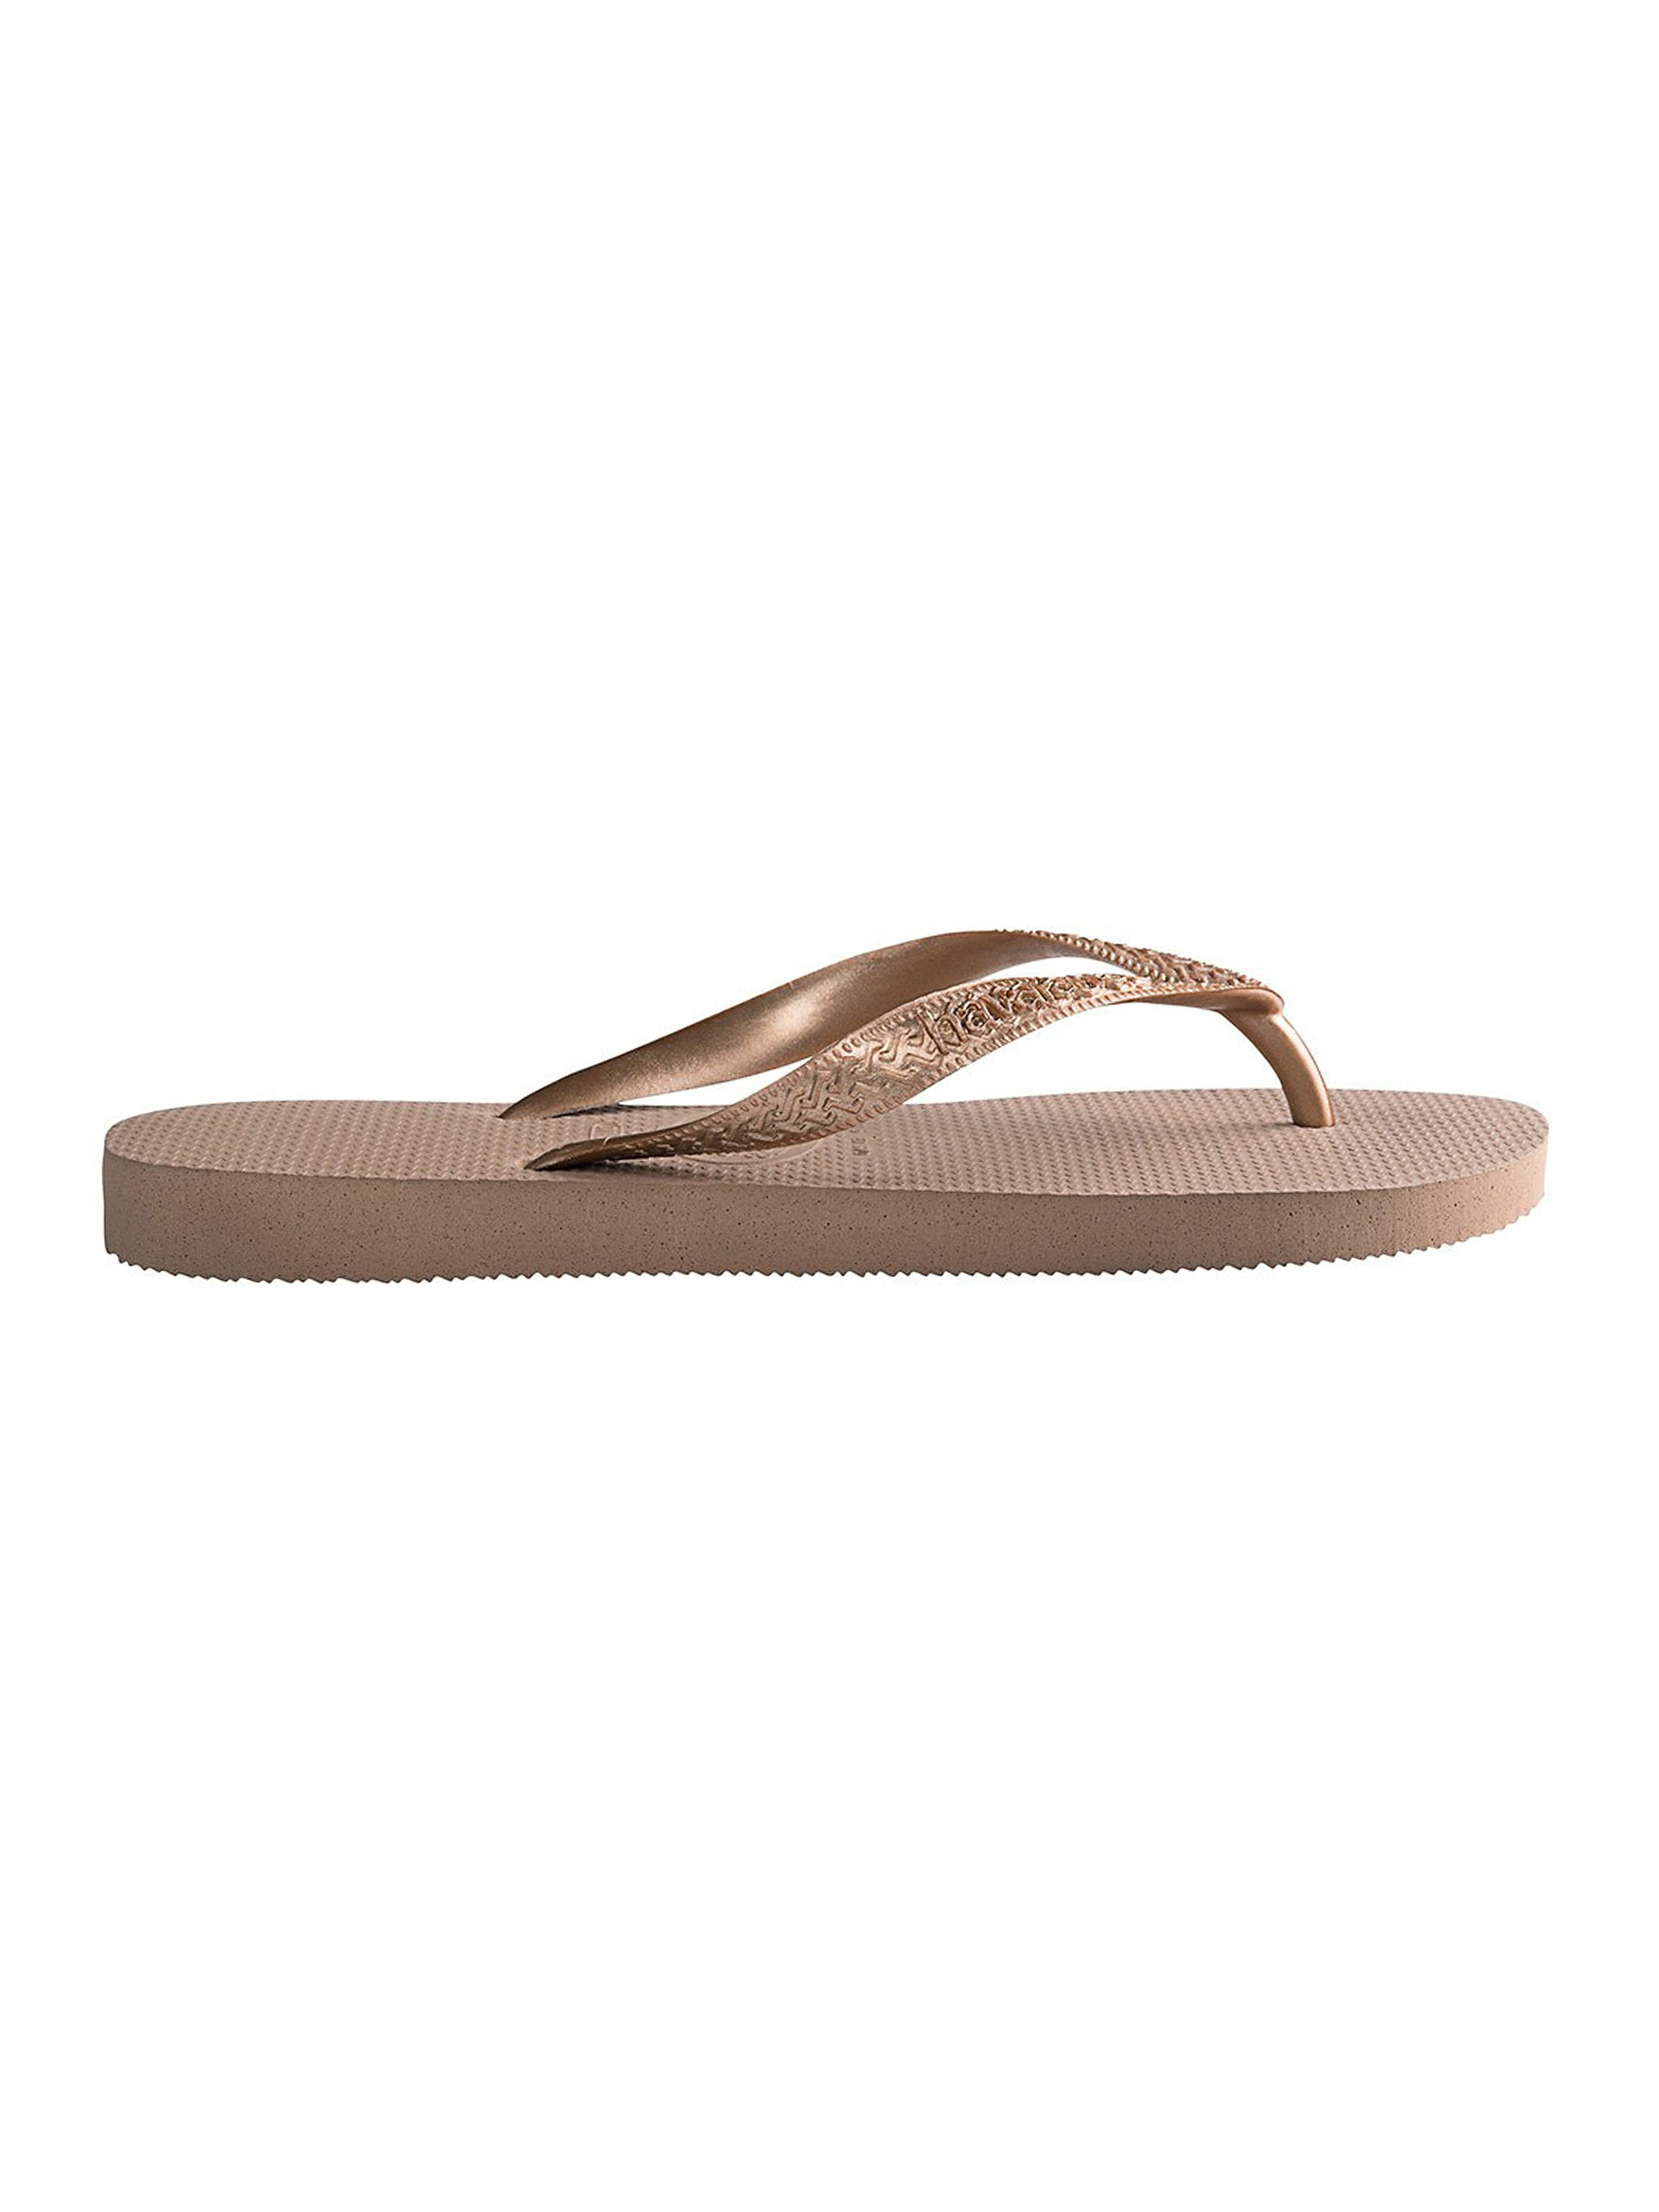 Havaianas Women's Top Tiras Flip Flops - Rose Gold